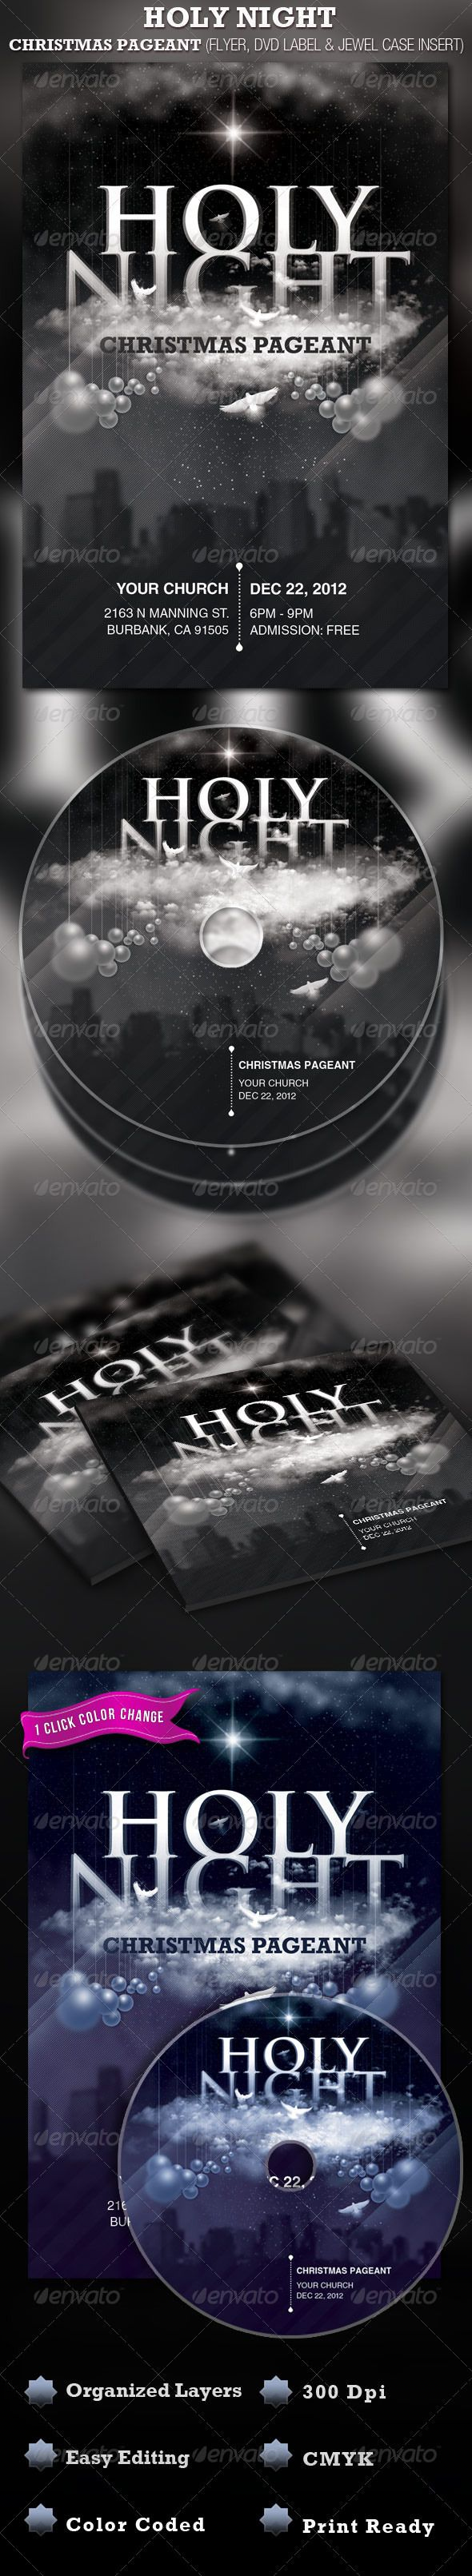 Holy Night Chirstmas Flyer and CD Label Template - Price: $7.00